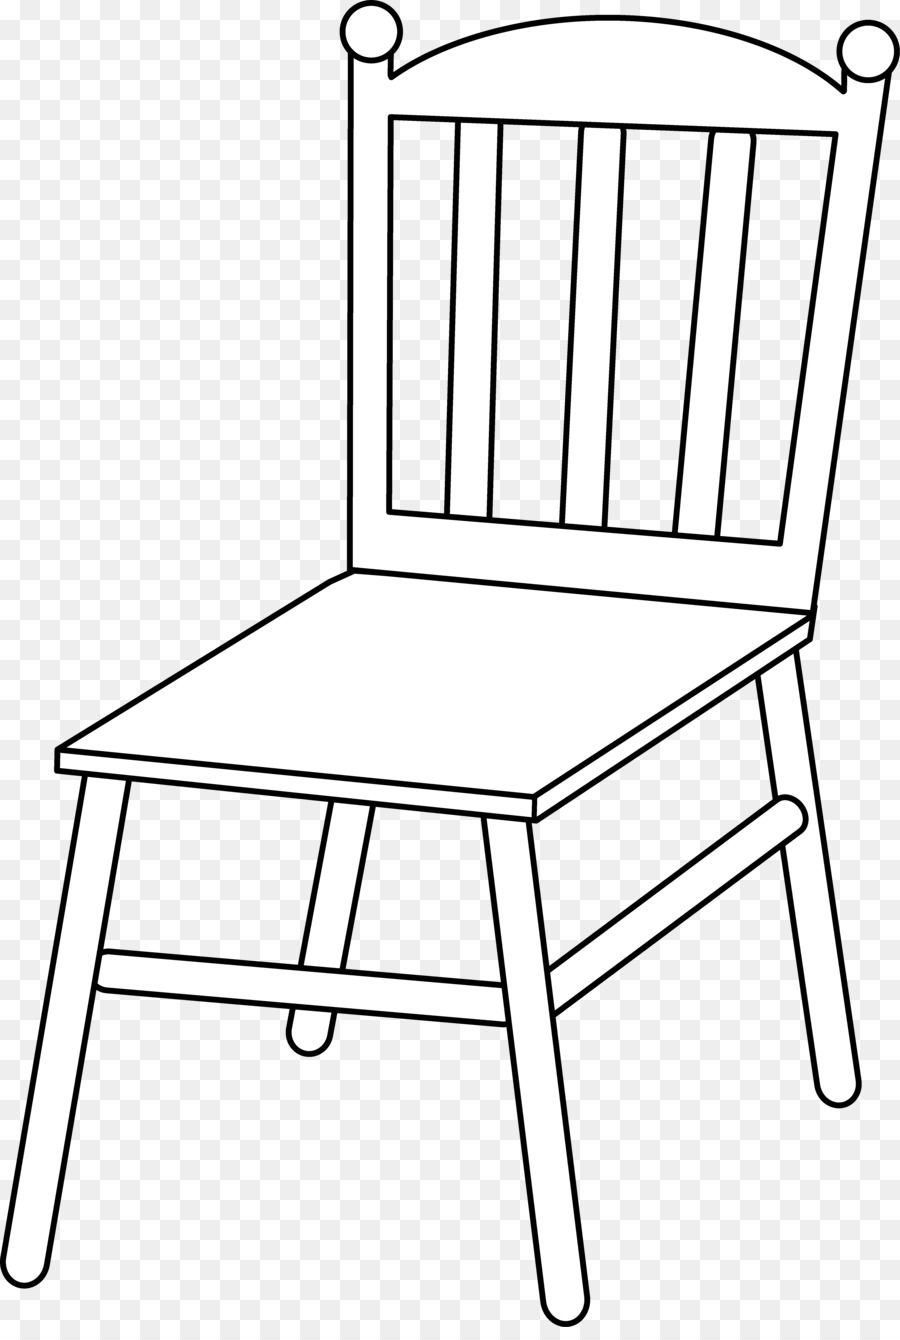 Chair Black And White Clipart.